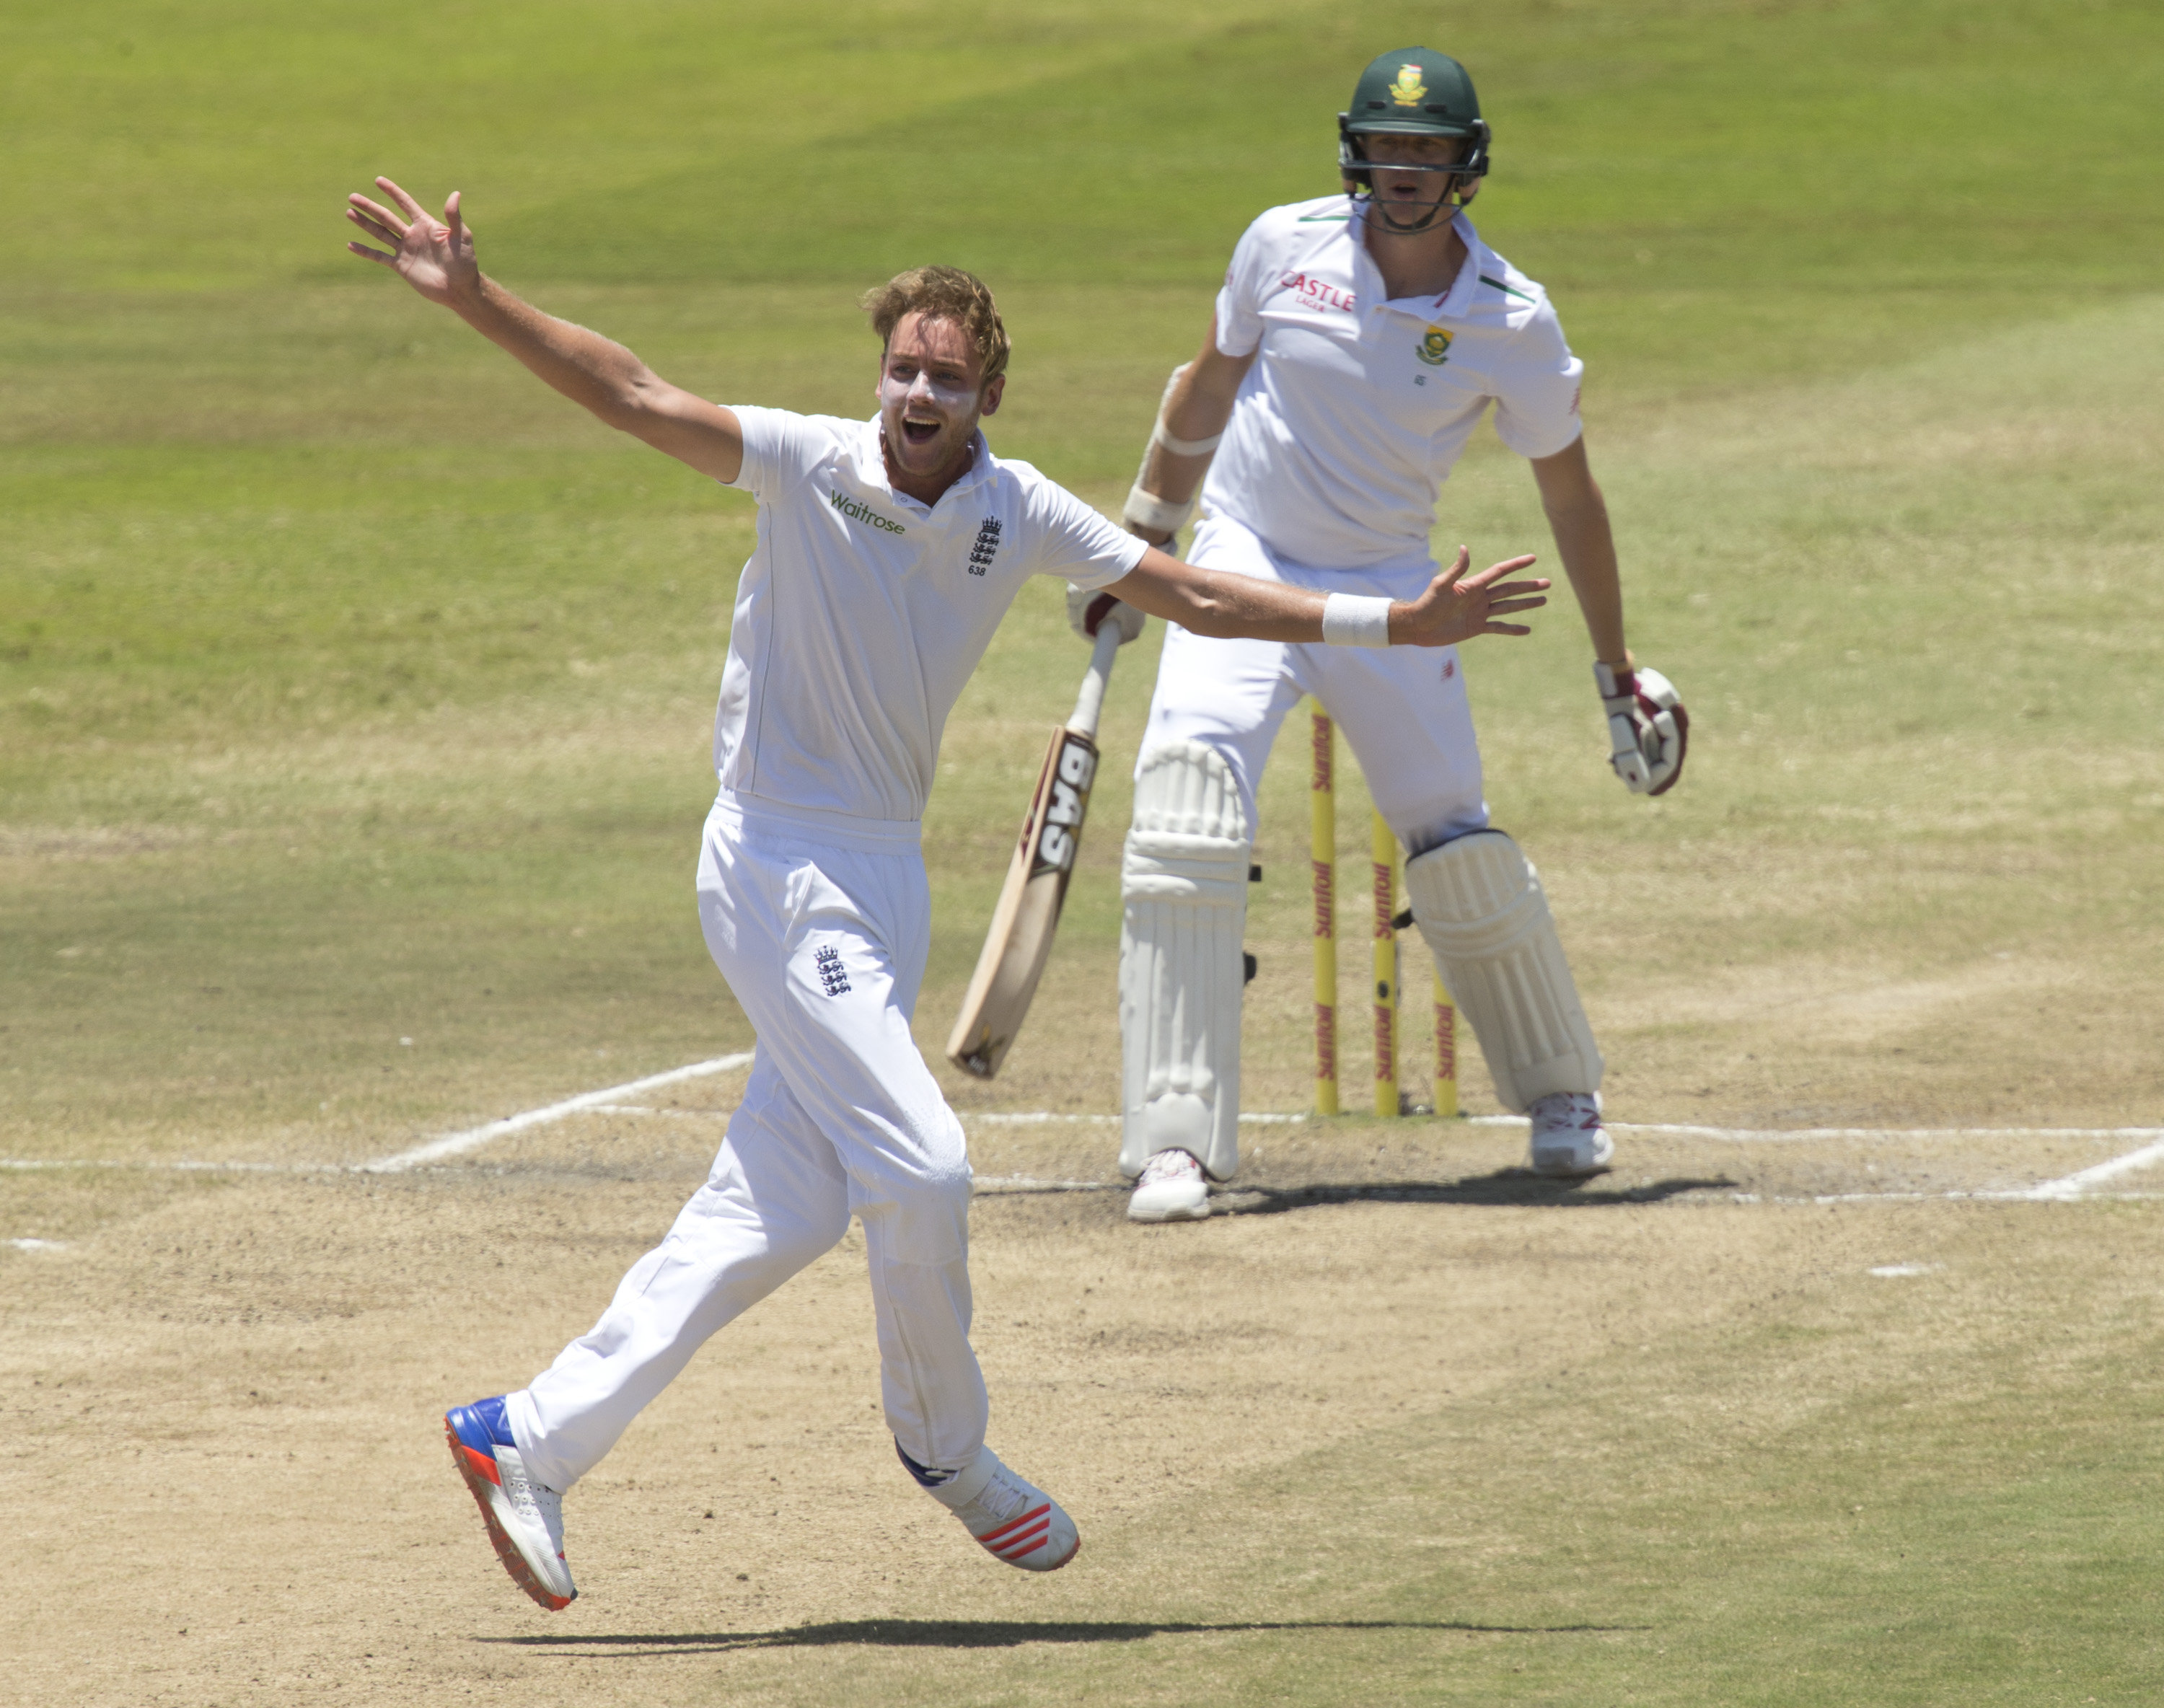 England's Stuart Broad appeals successfully for the wicket of South Africa's Morne Morkel during the first cricket test match in Durban, South Africa, December 30, 2015. Photo: Reuters